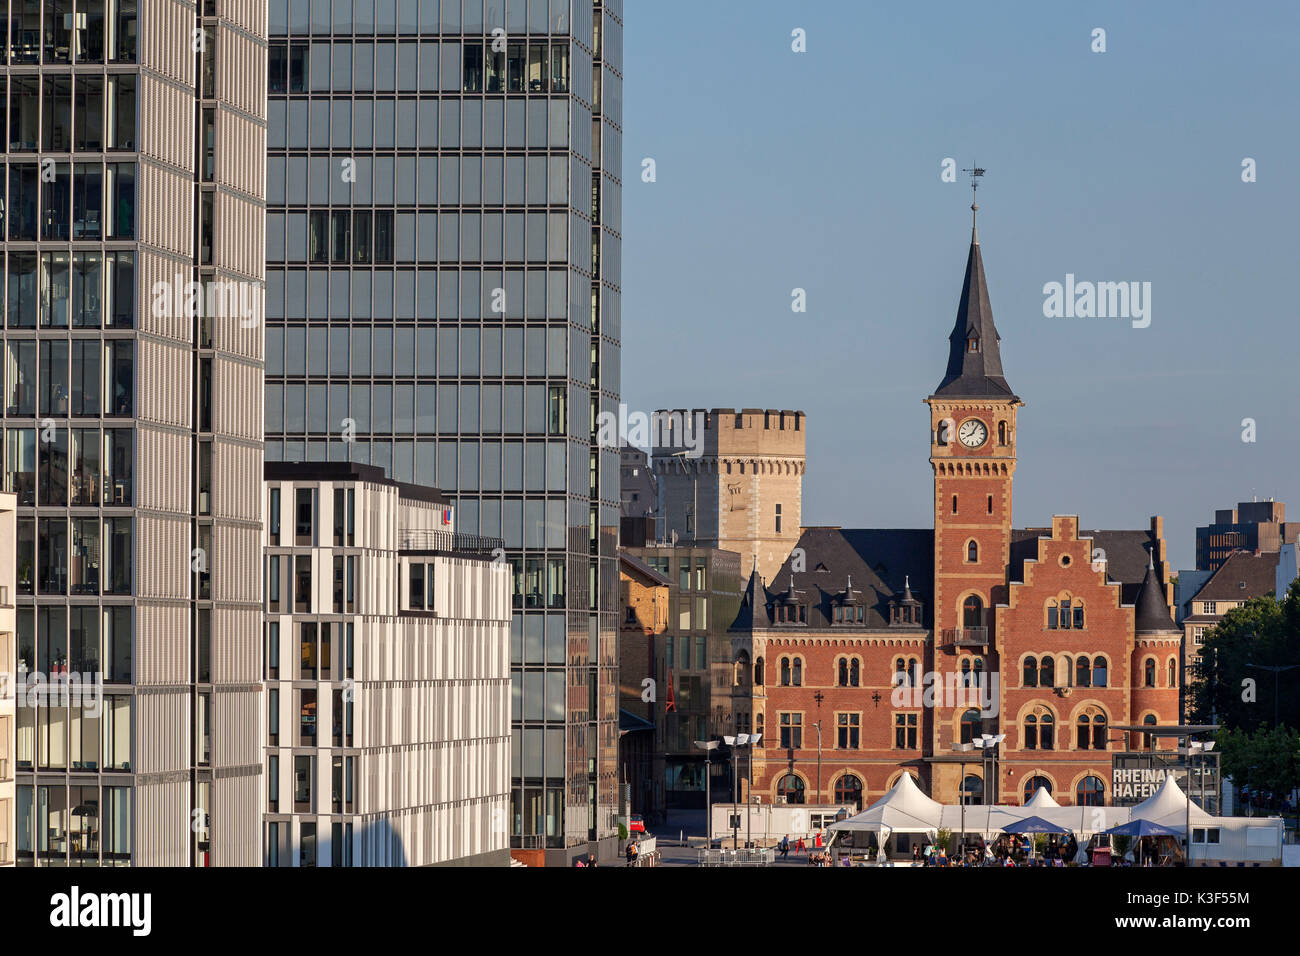 Old port authority with yacht harbour and crane houses, Cologne, North Rhine-Westphalia, Germany - Stock Image